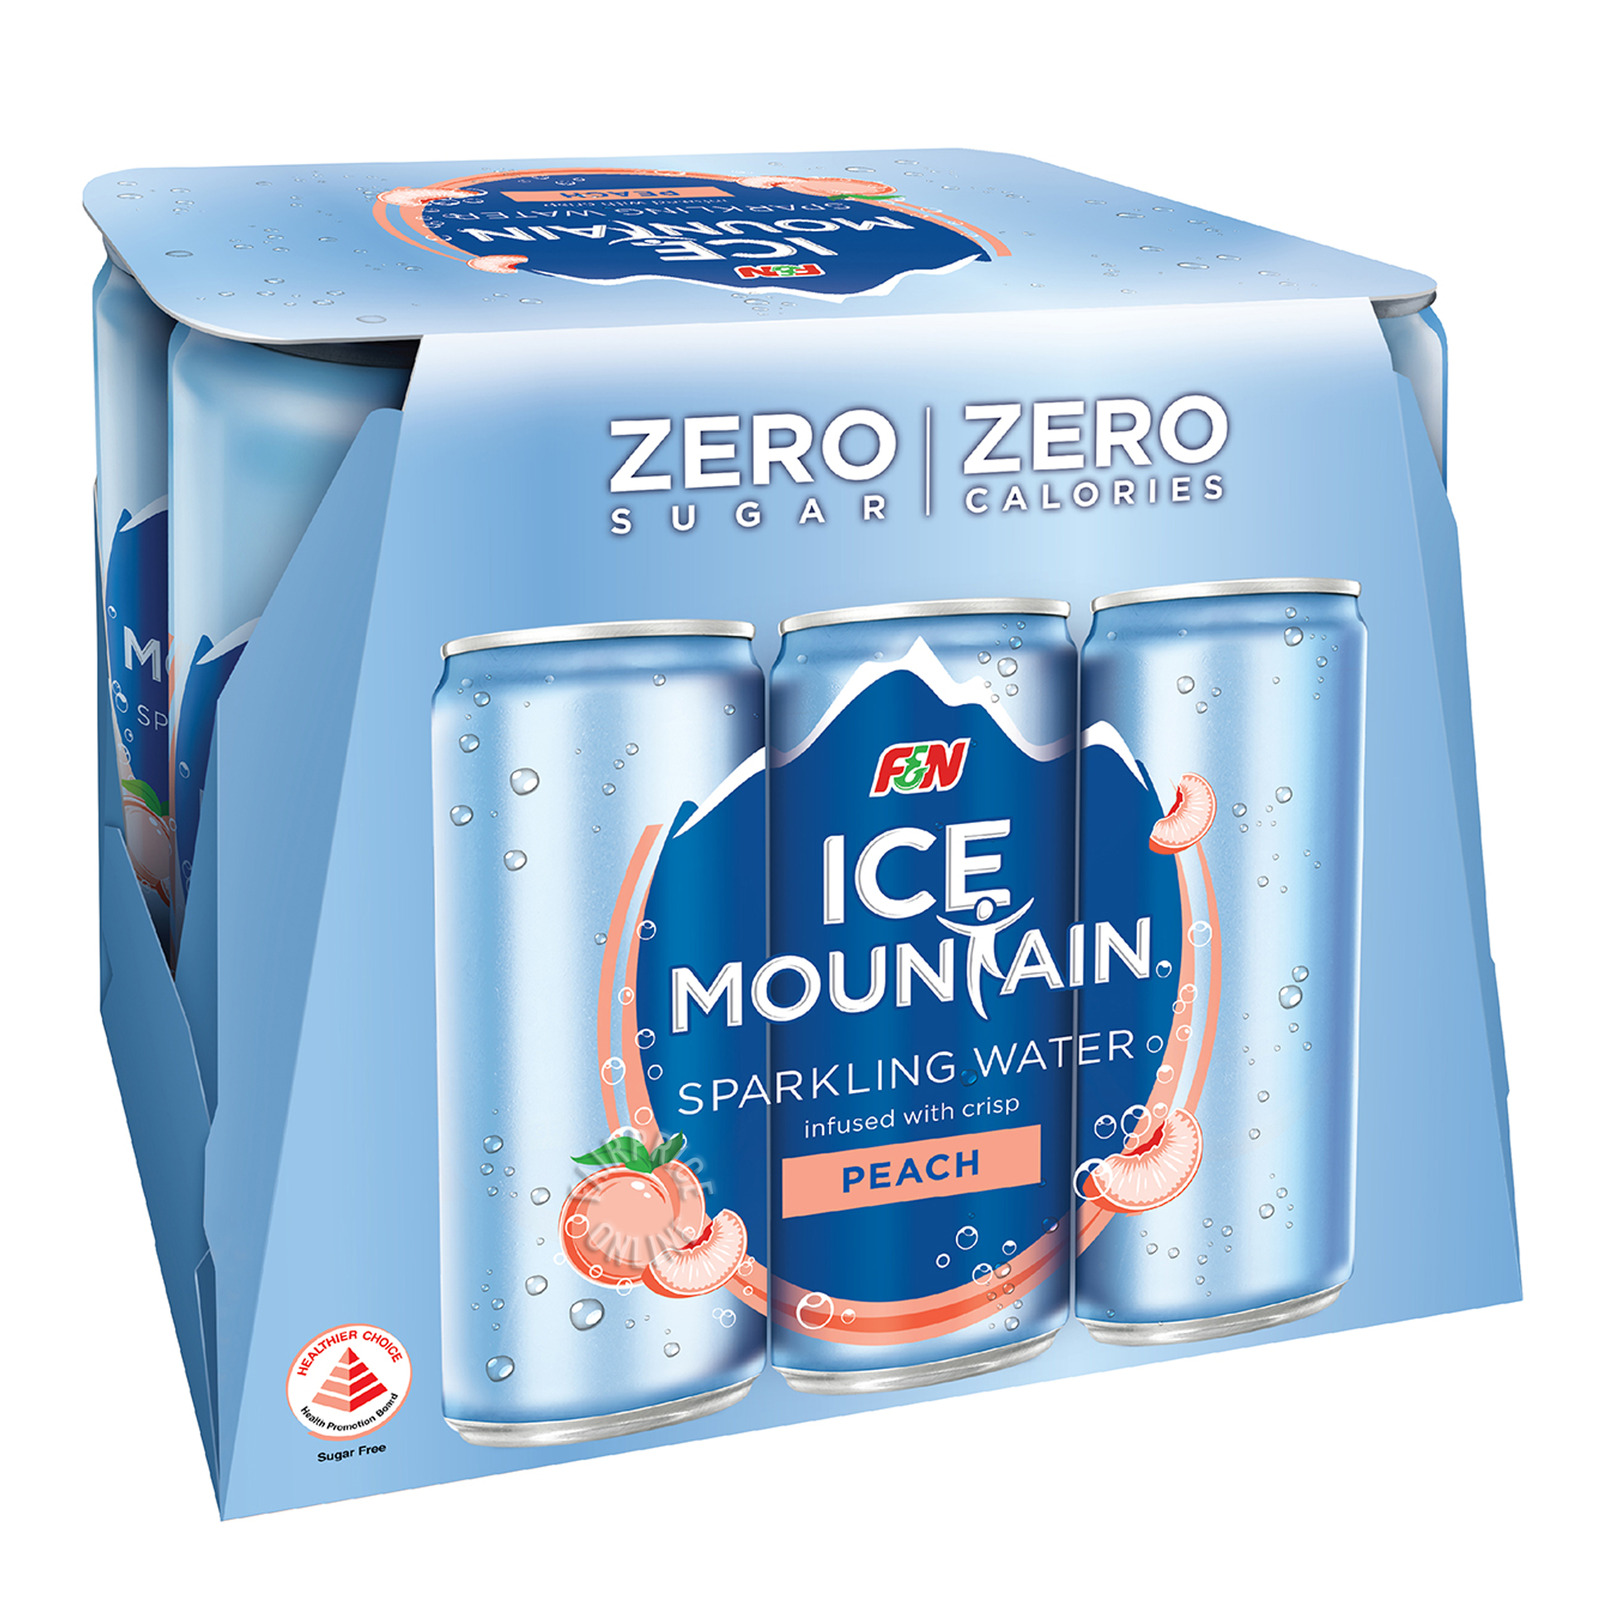 F&N Ice Mountain Sparkling Can Water - Peach